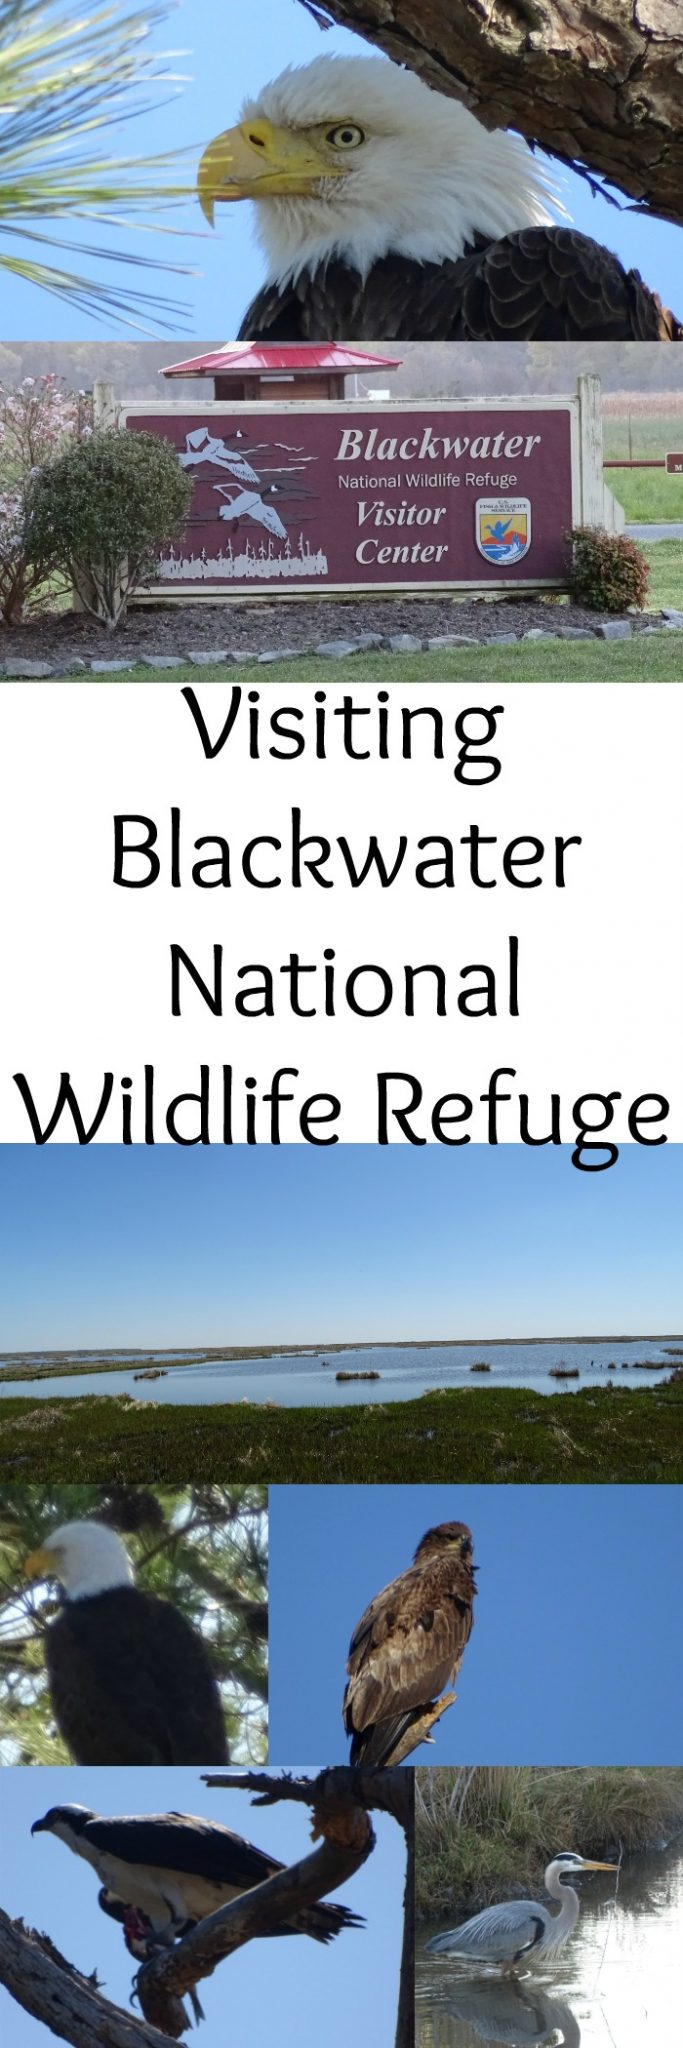 Visiting Blackwater National Wildlife Refuge is a great place to see bald eagles, herons, egrets and other animals.